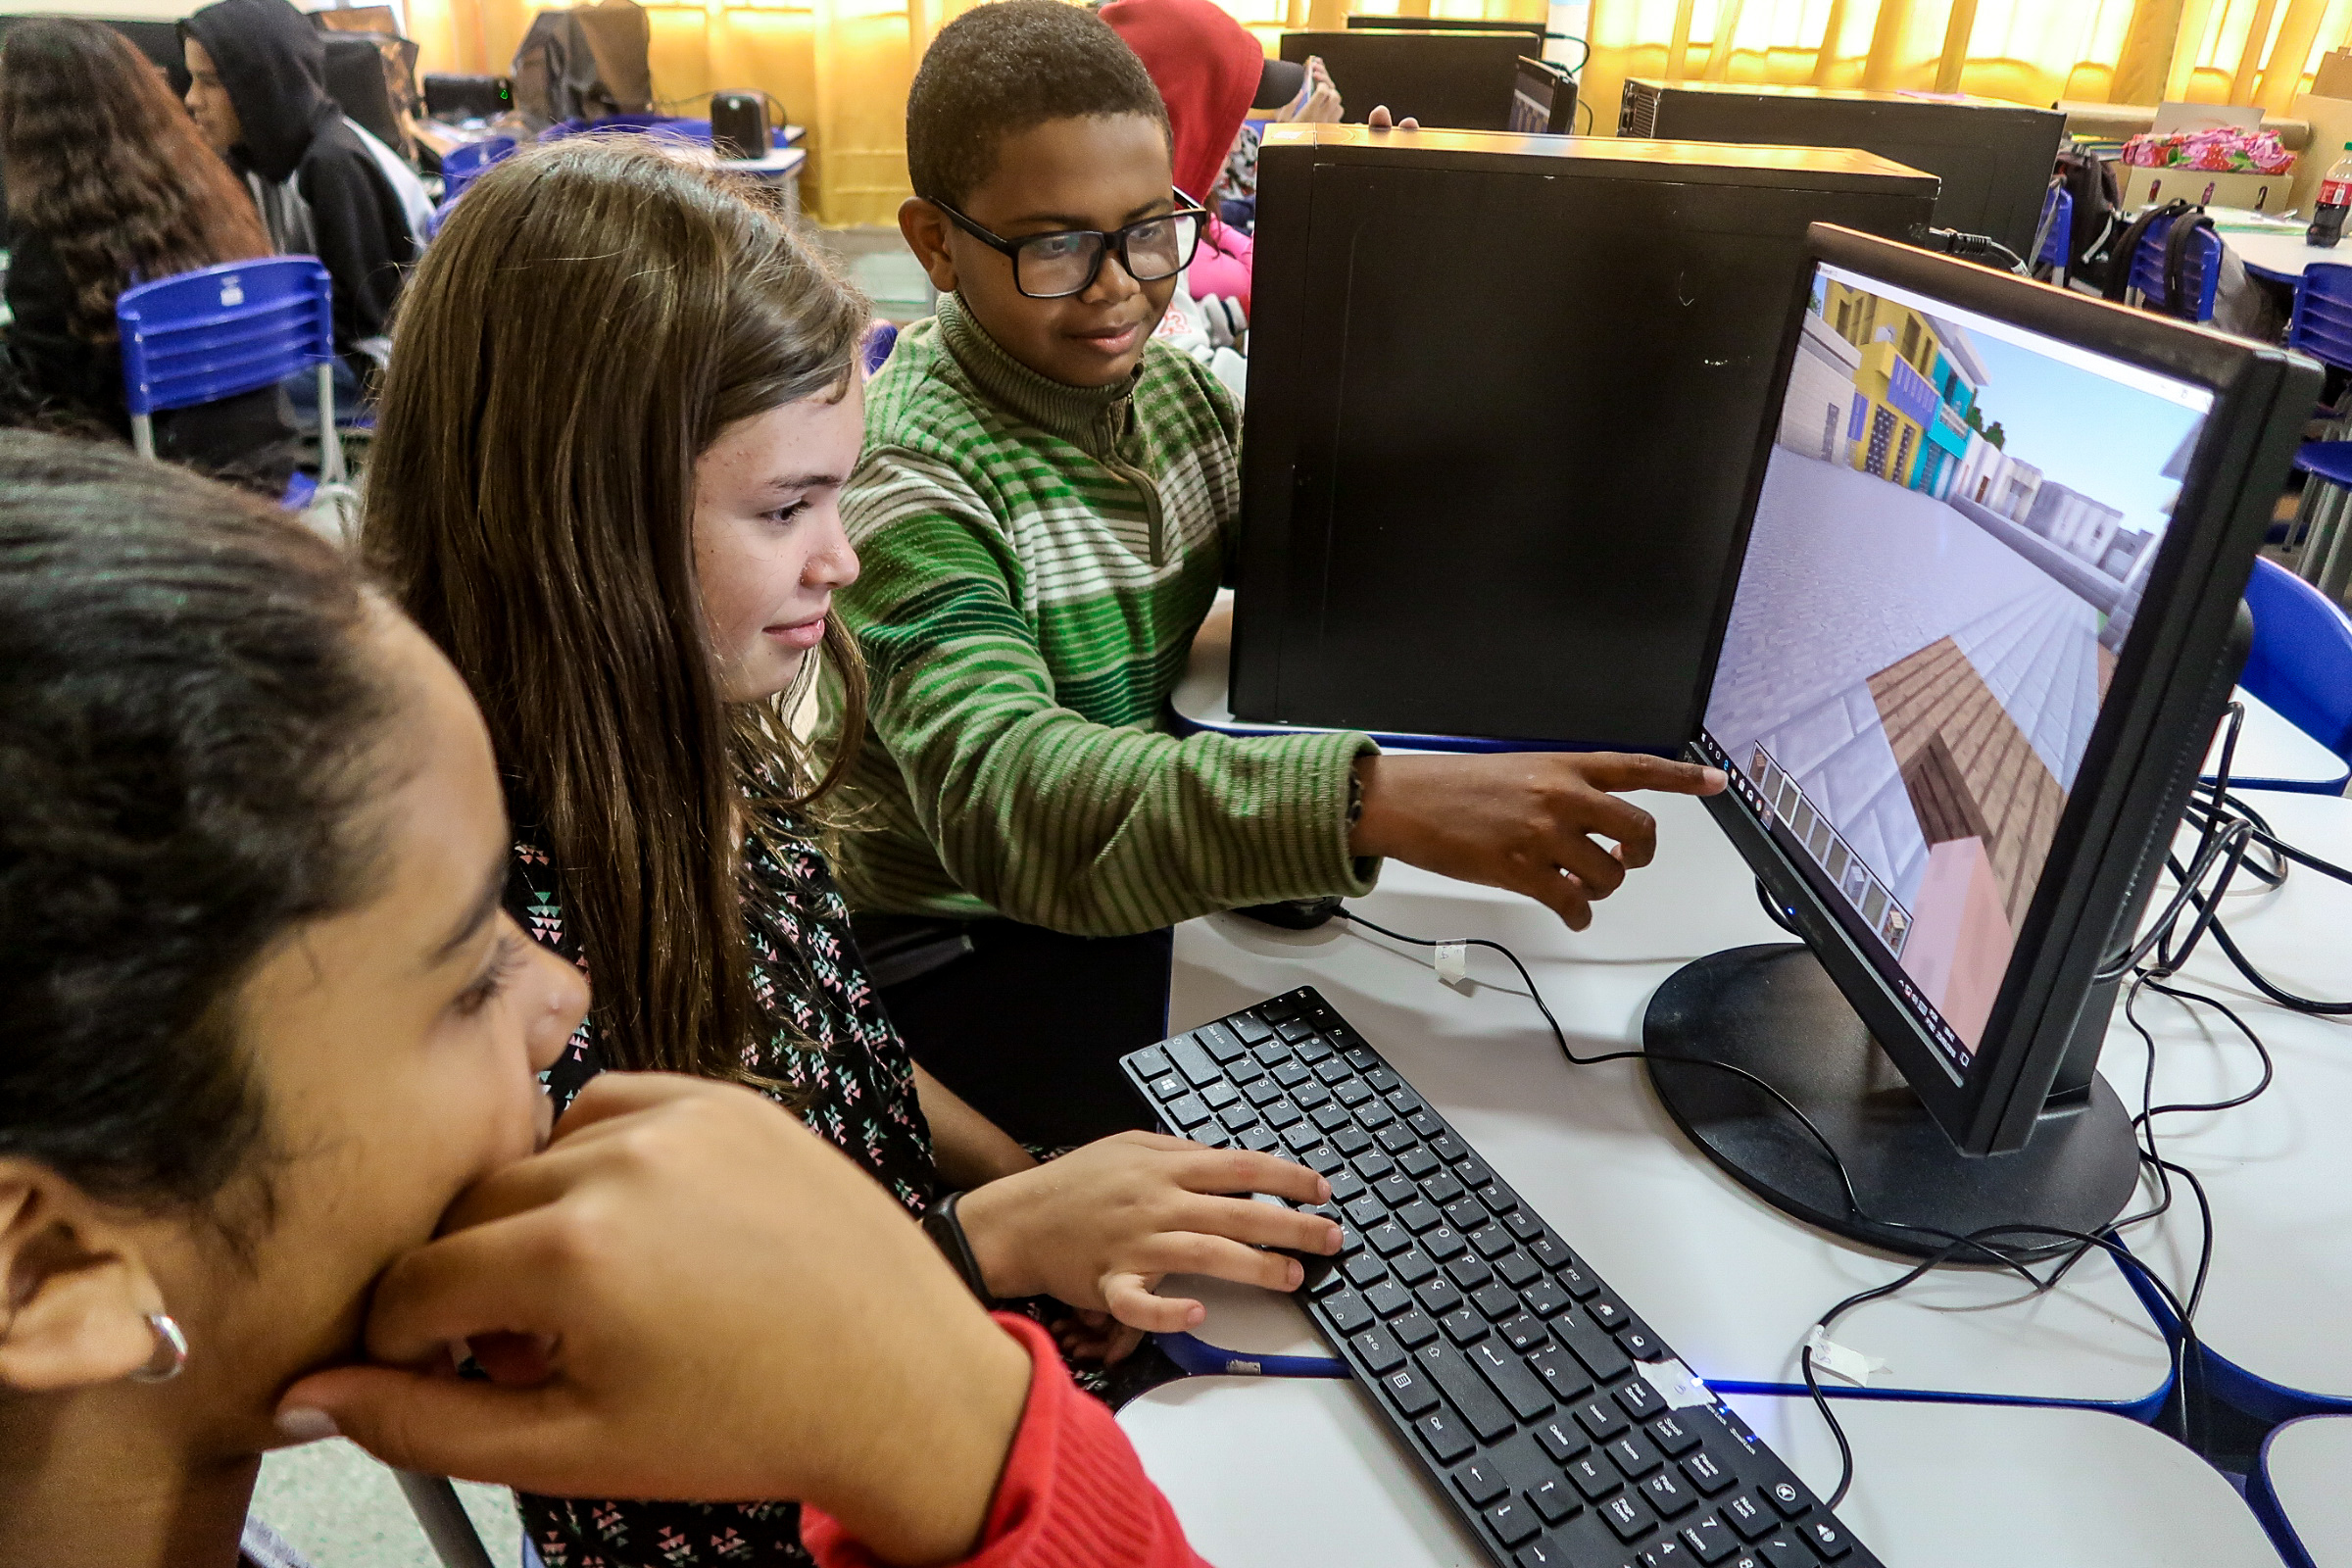 Students worked together to design their ideas in Minecraft. Credit: Cidade Ativa